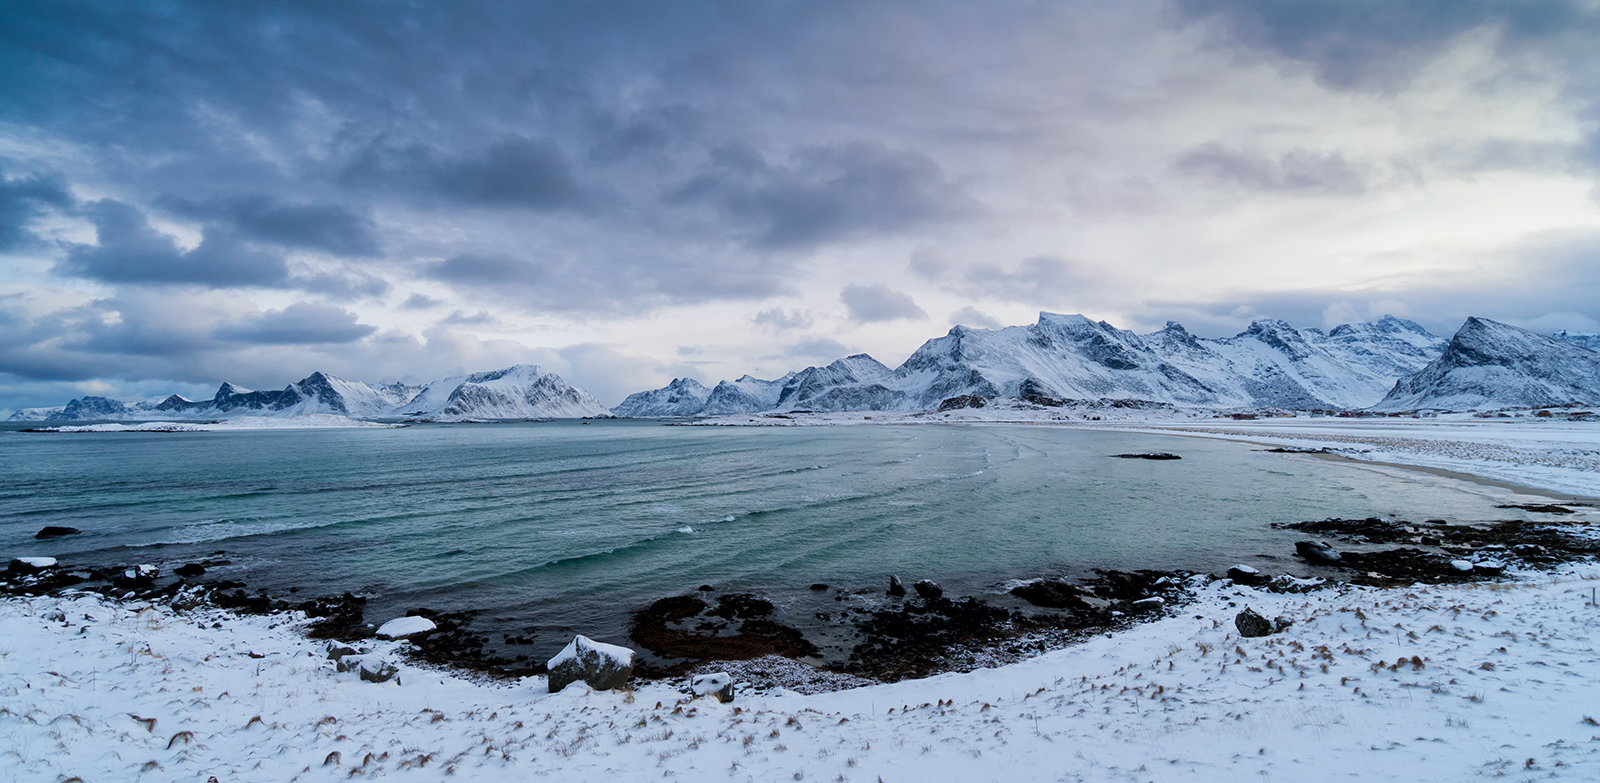 snow, beach, mountains, lofoten, norway, long exposure, clouds, sea, ocean